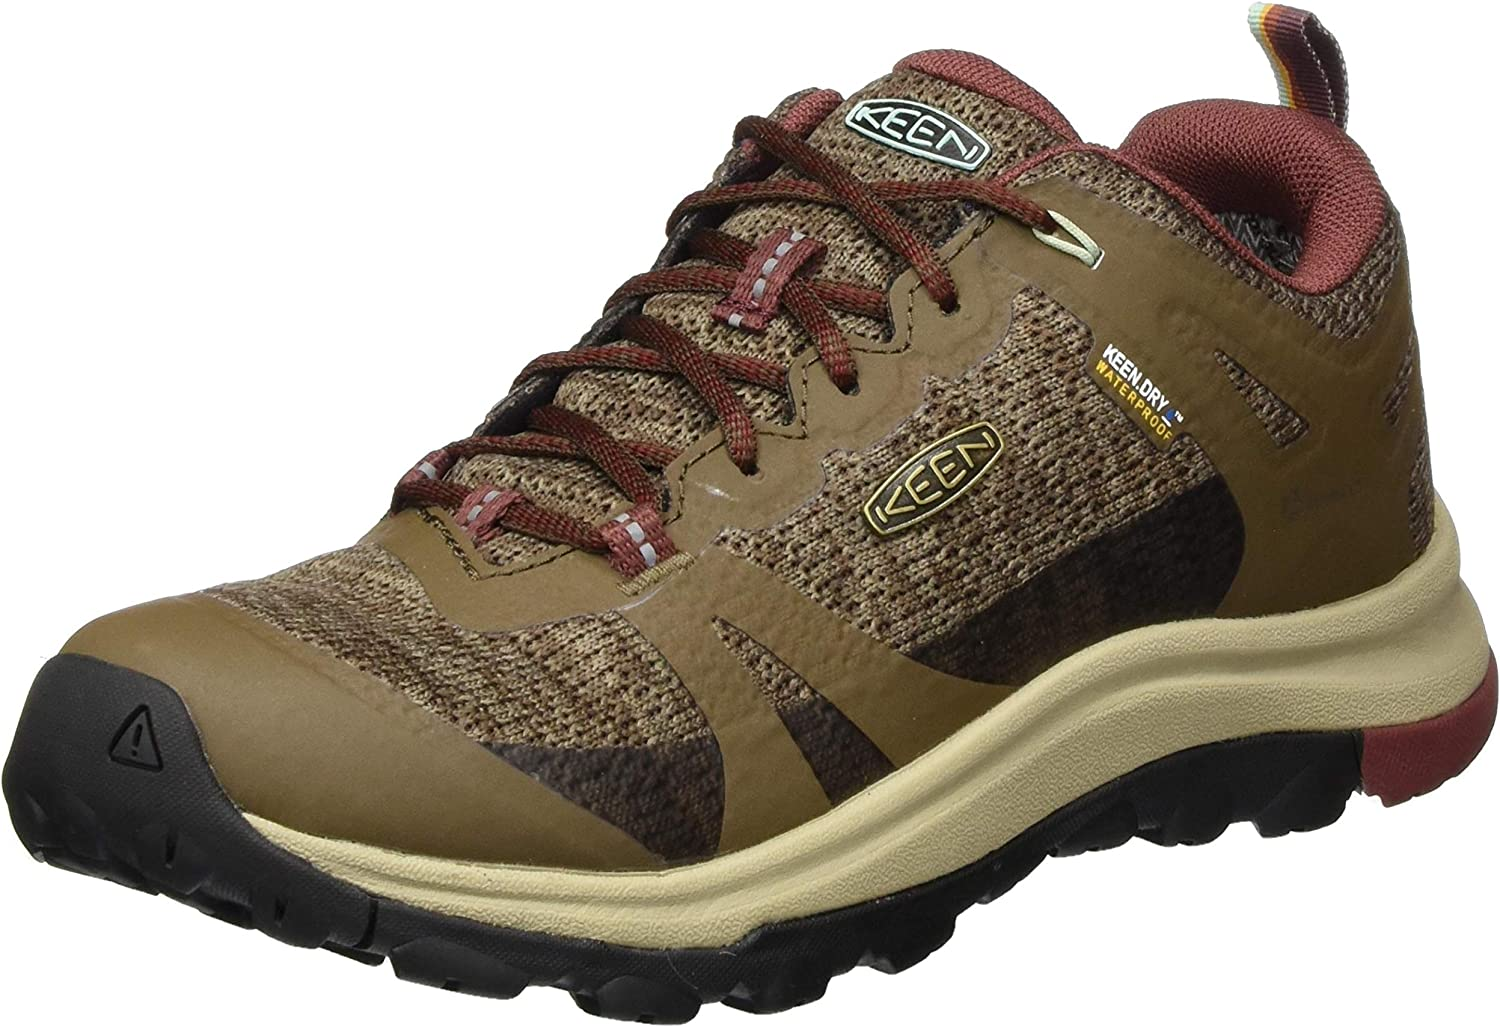 Keen Terradora 2 Low Height Waterproof, Zapatos para Senderismo Mujer: Amazon.es: Zapatos y complementos